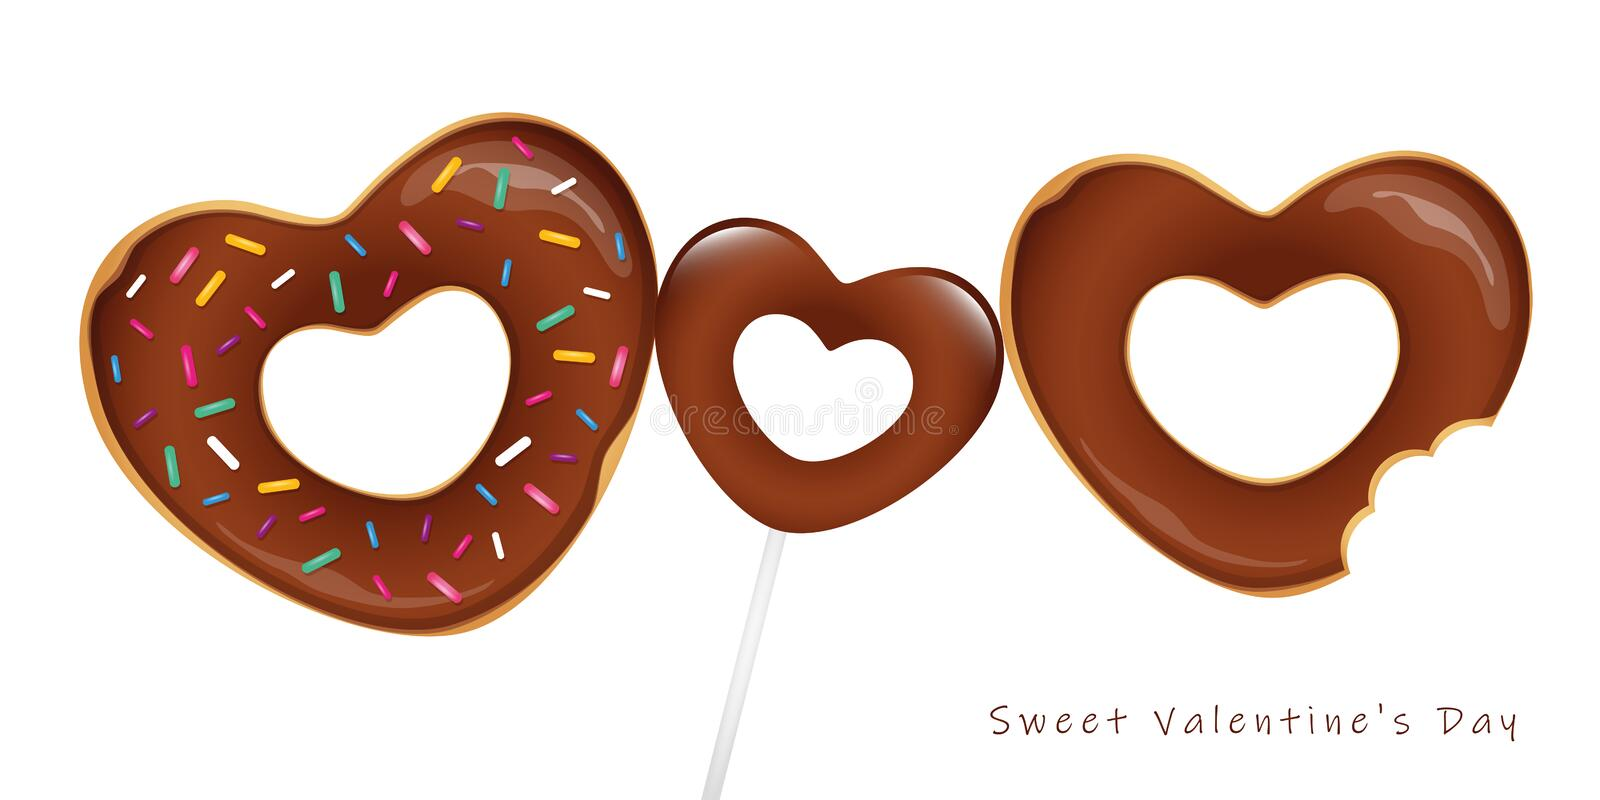 Sweet valentines day with chocolate donuts and lollipop vector illustration